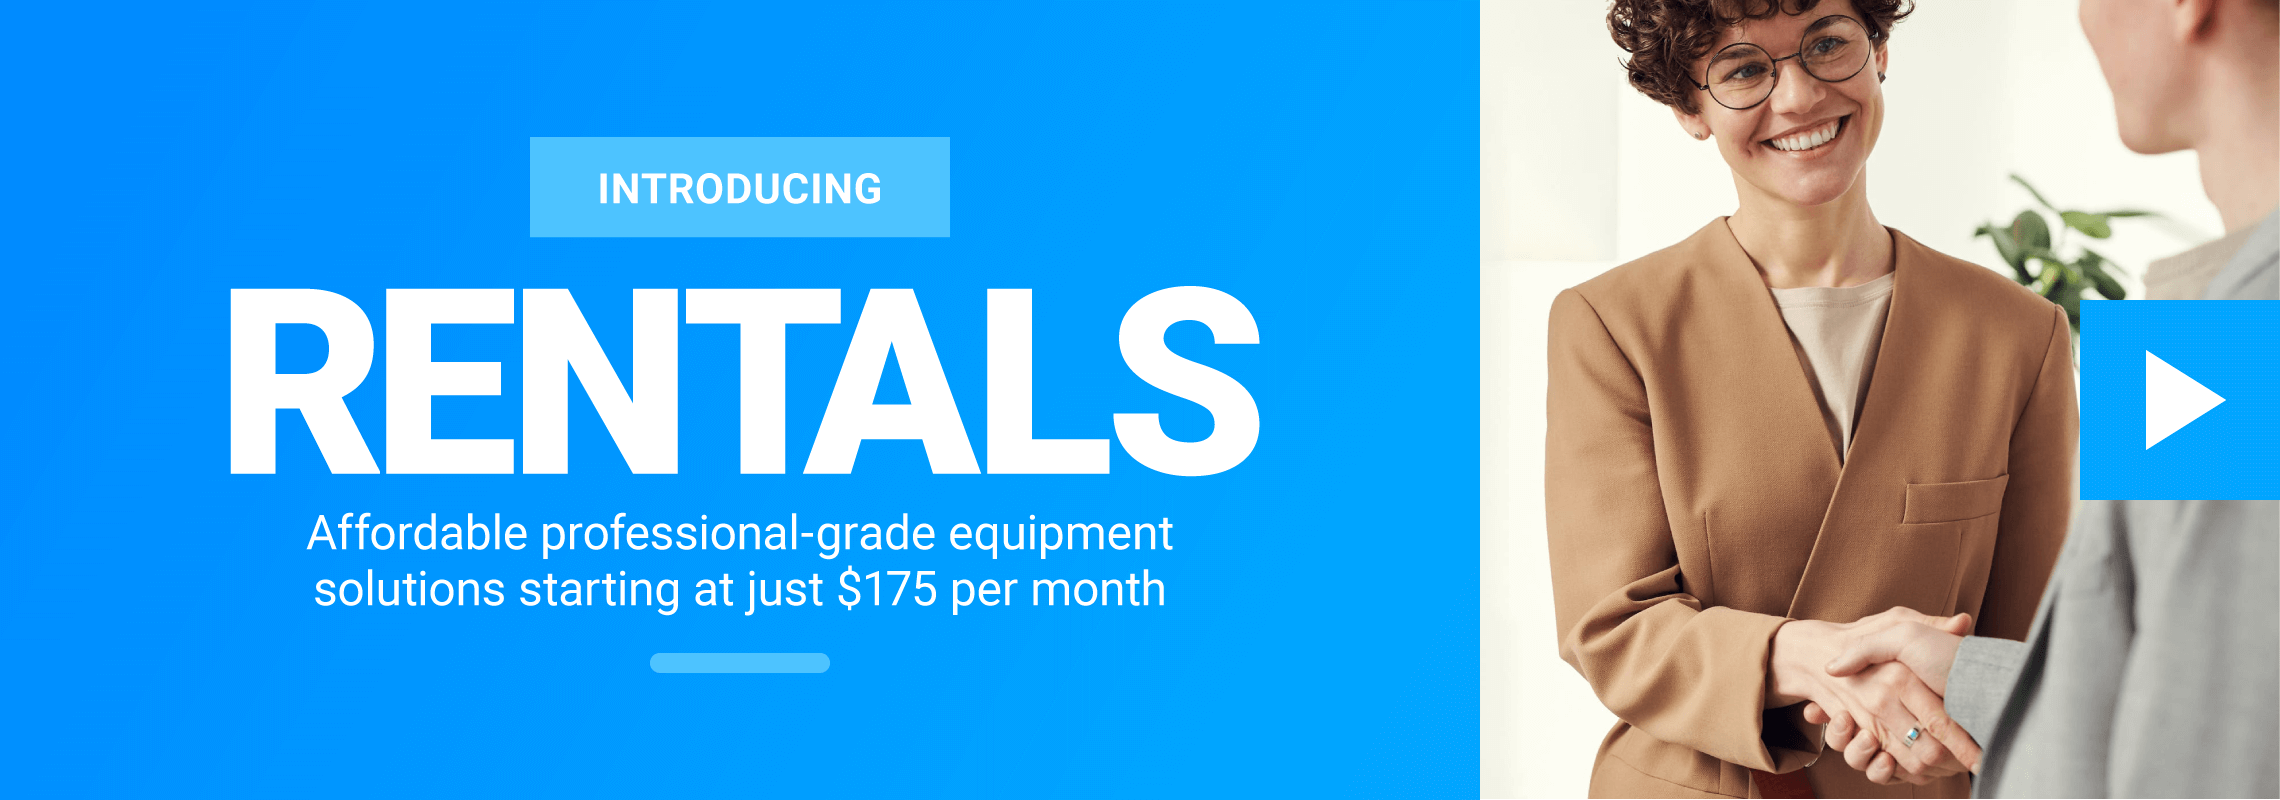 Introducing: RENTALS - Affordable hardware options